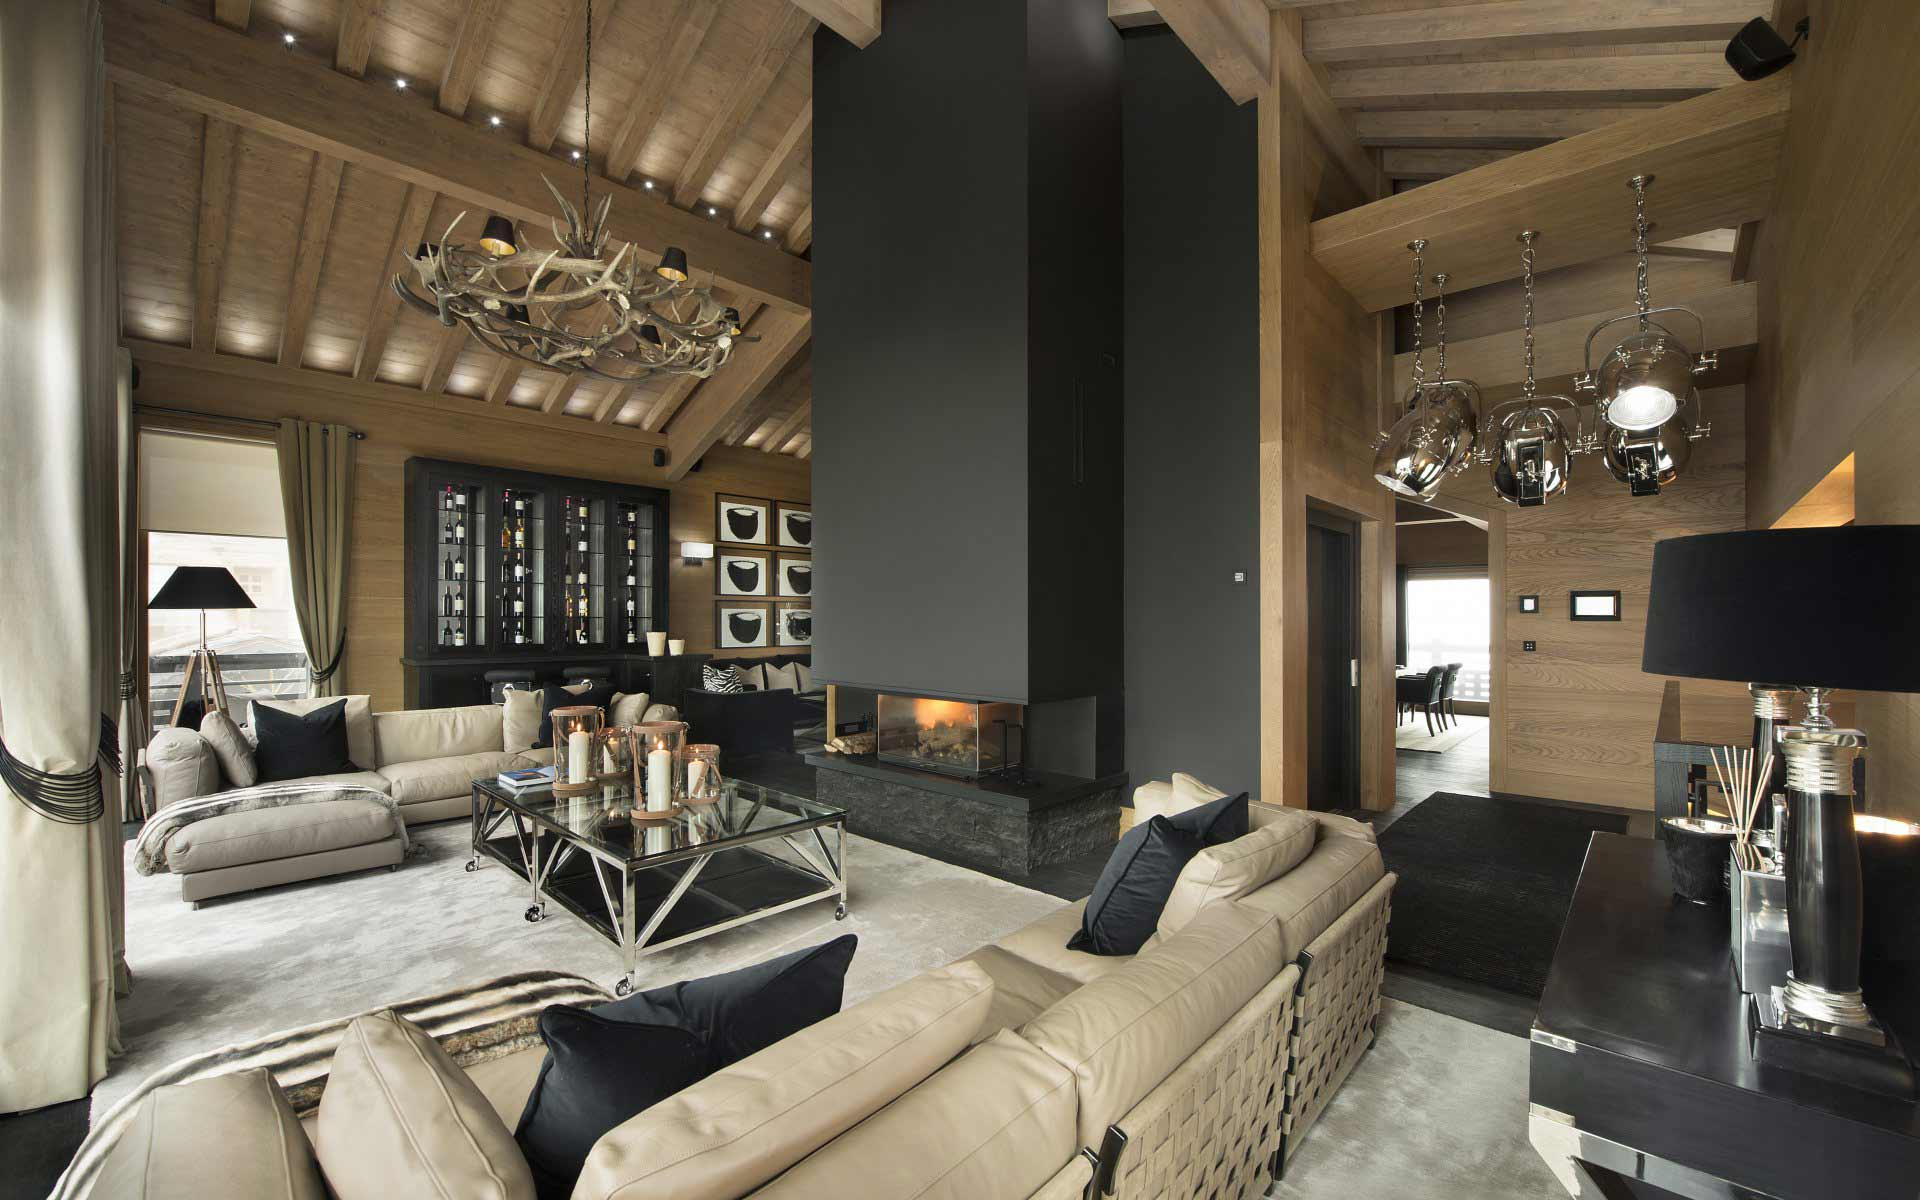 Courchevel - France - Chalet, 8 rooms, 7 bedrooms - Slideshow Picture 2